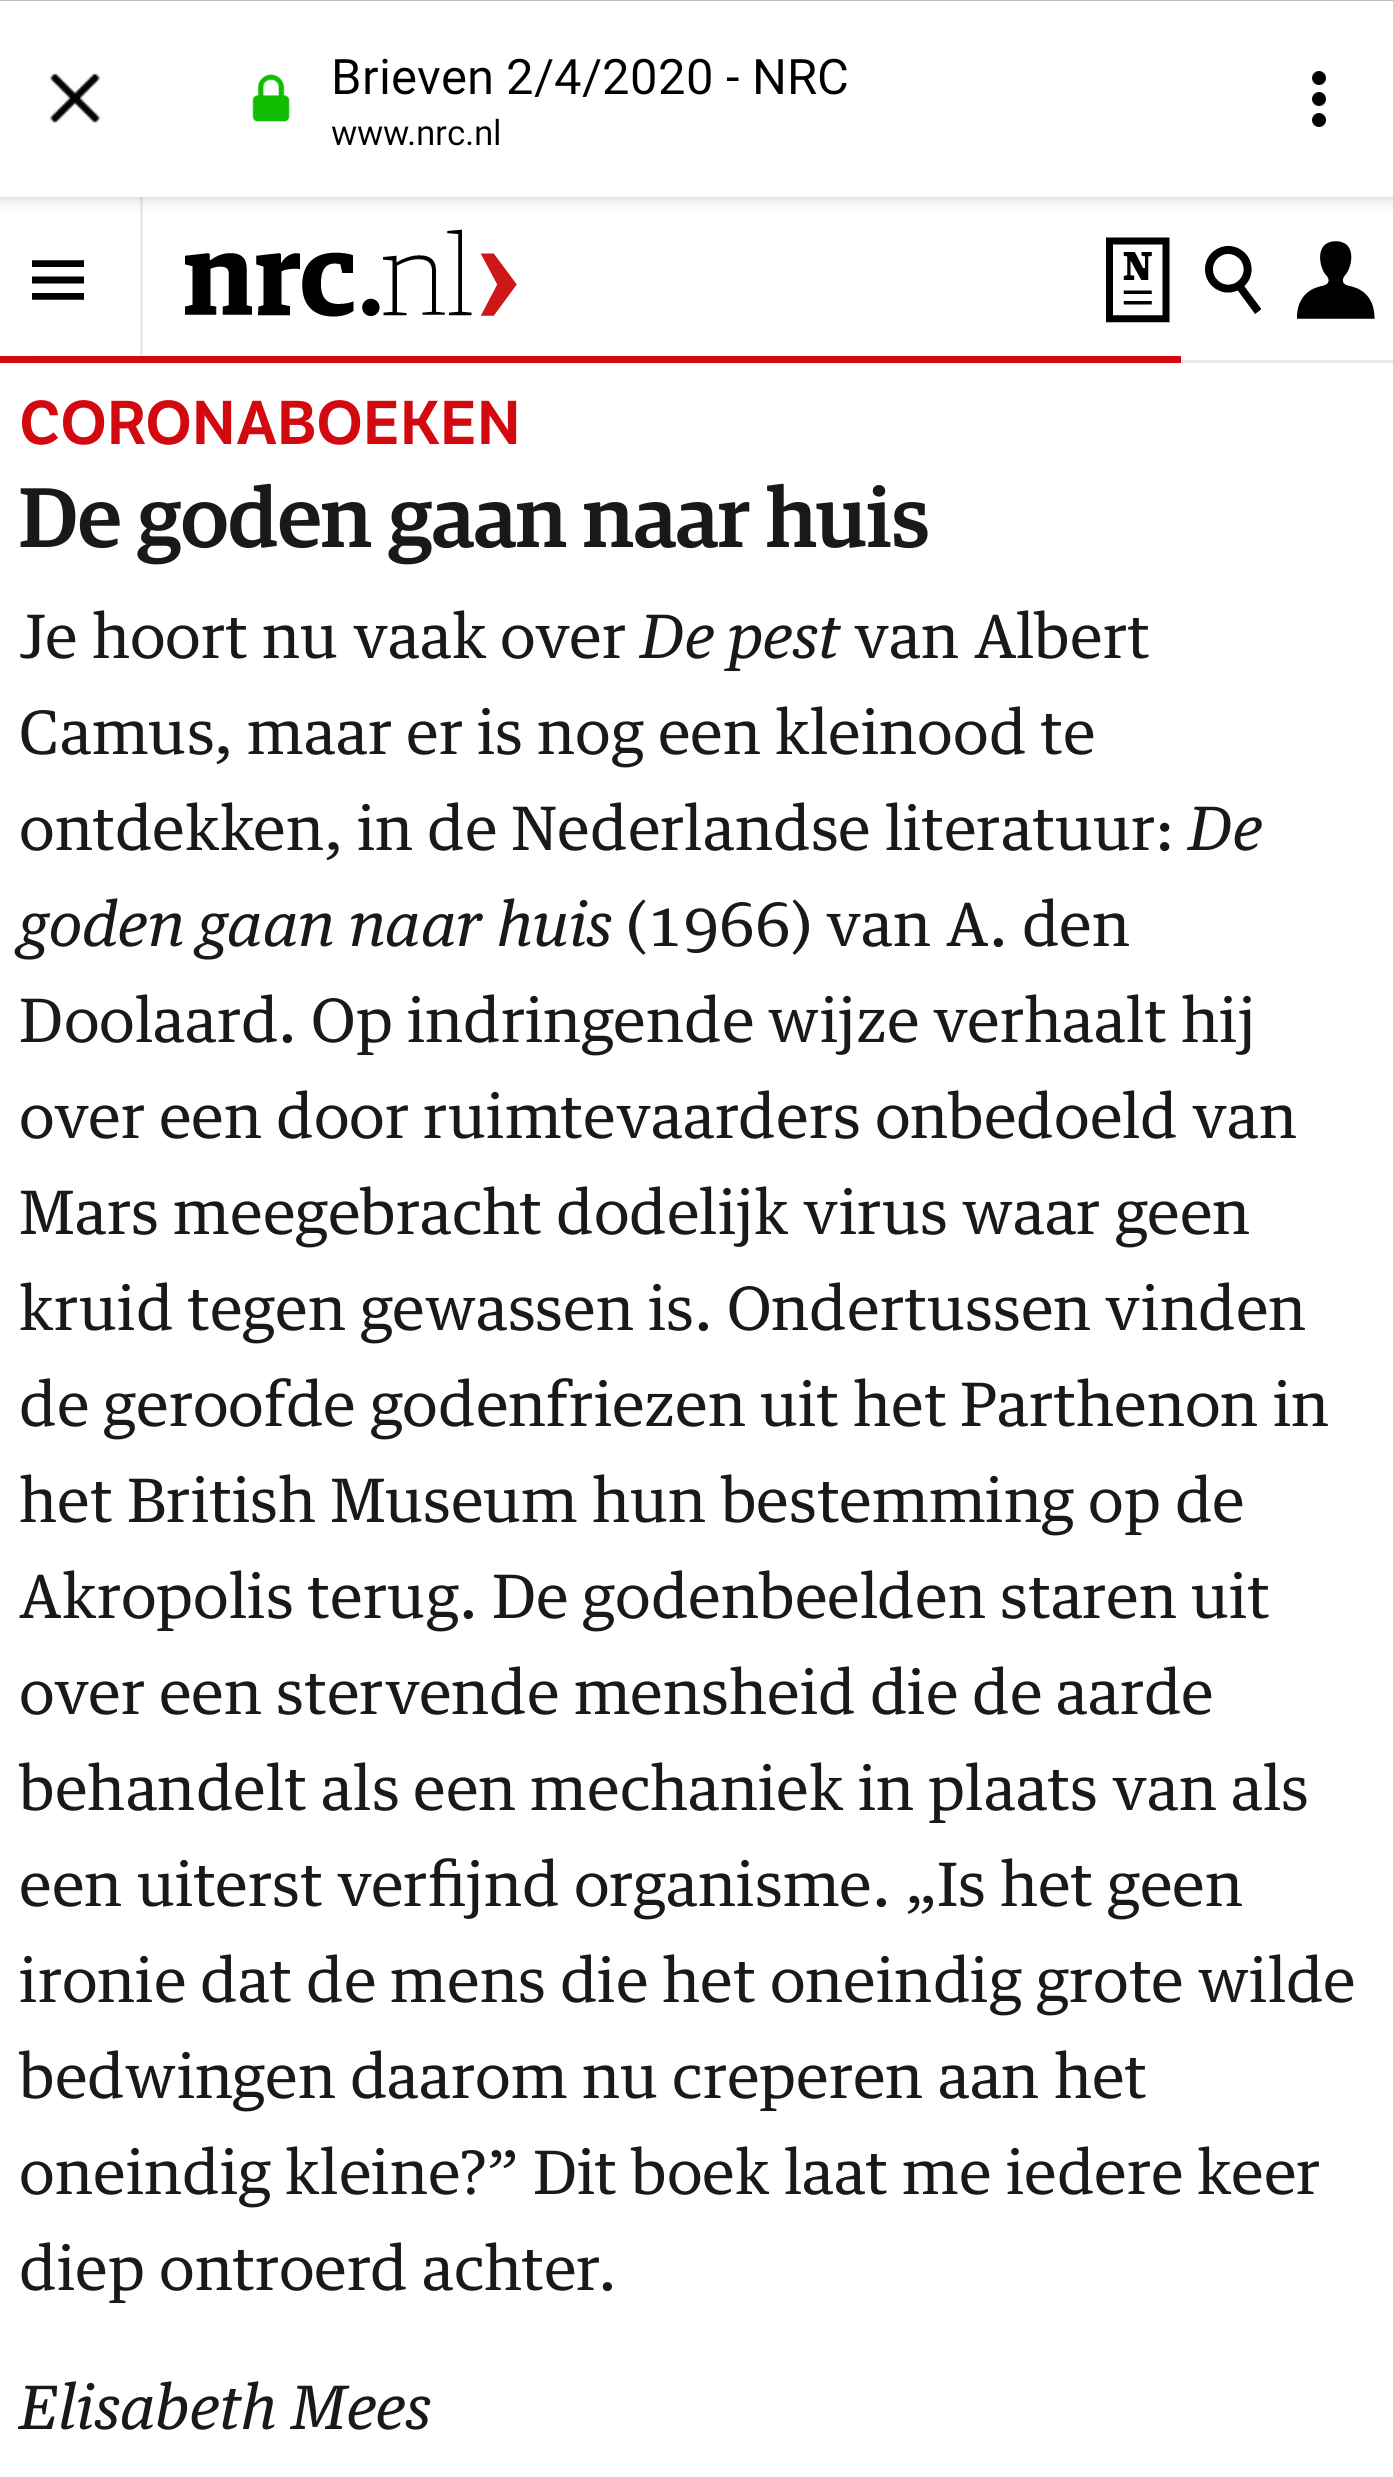 Ingezonden brief in de NRC van 2 april 2020